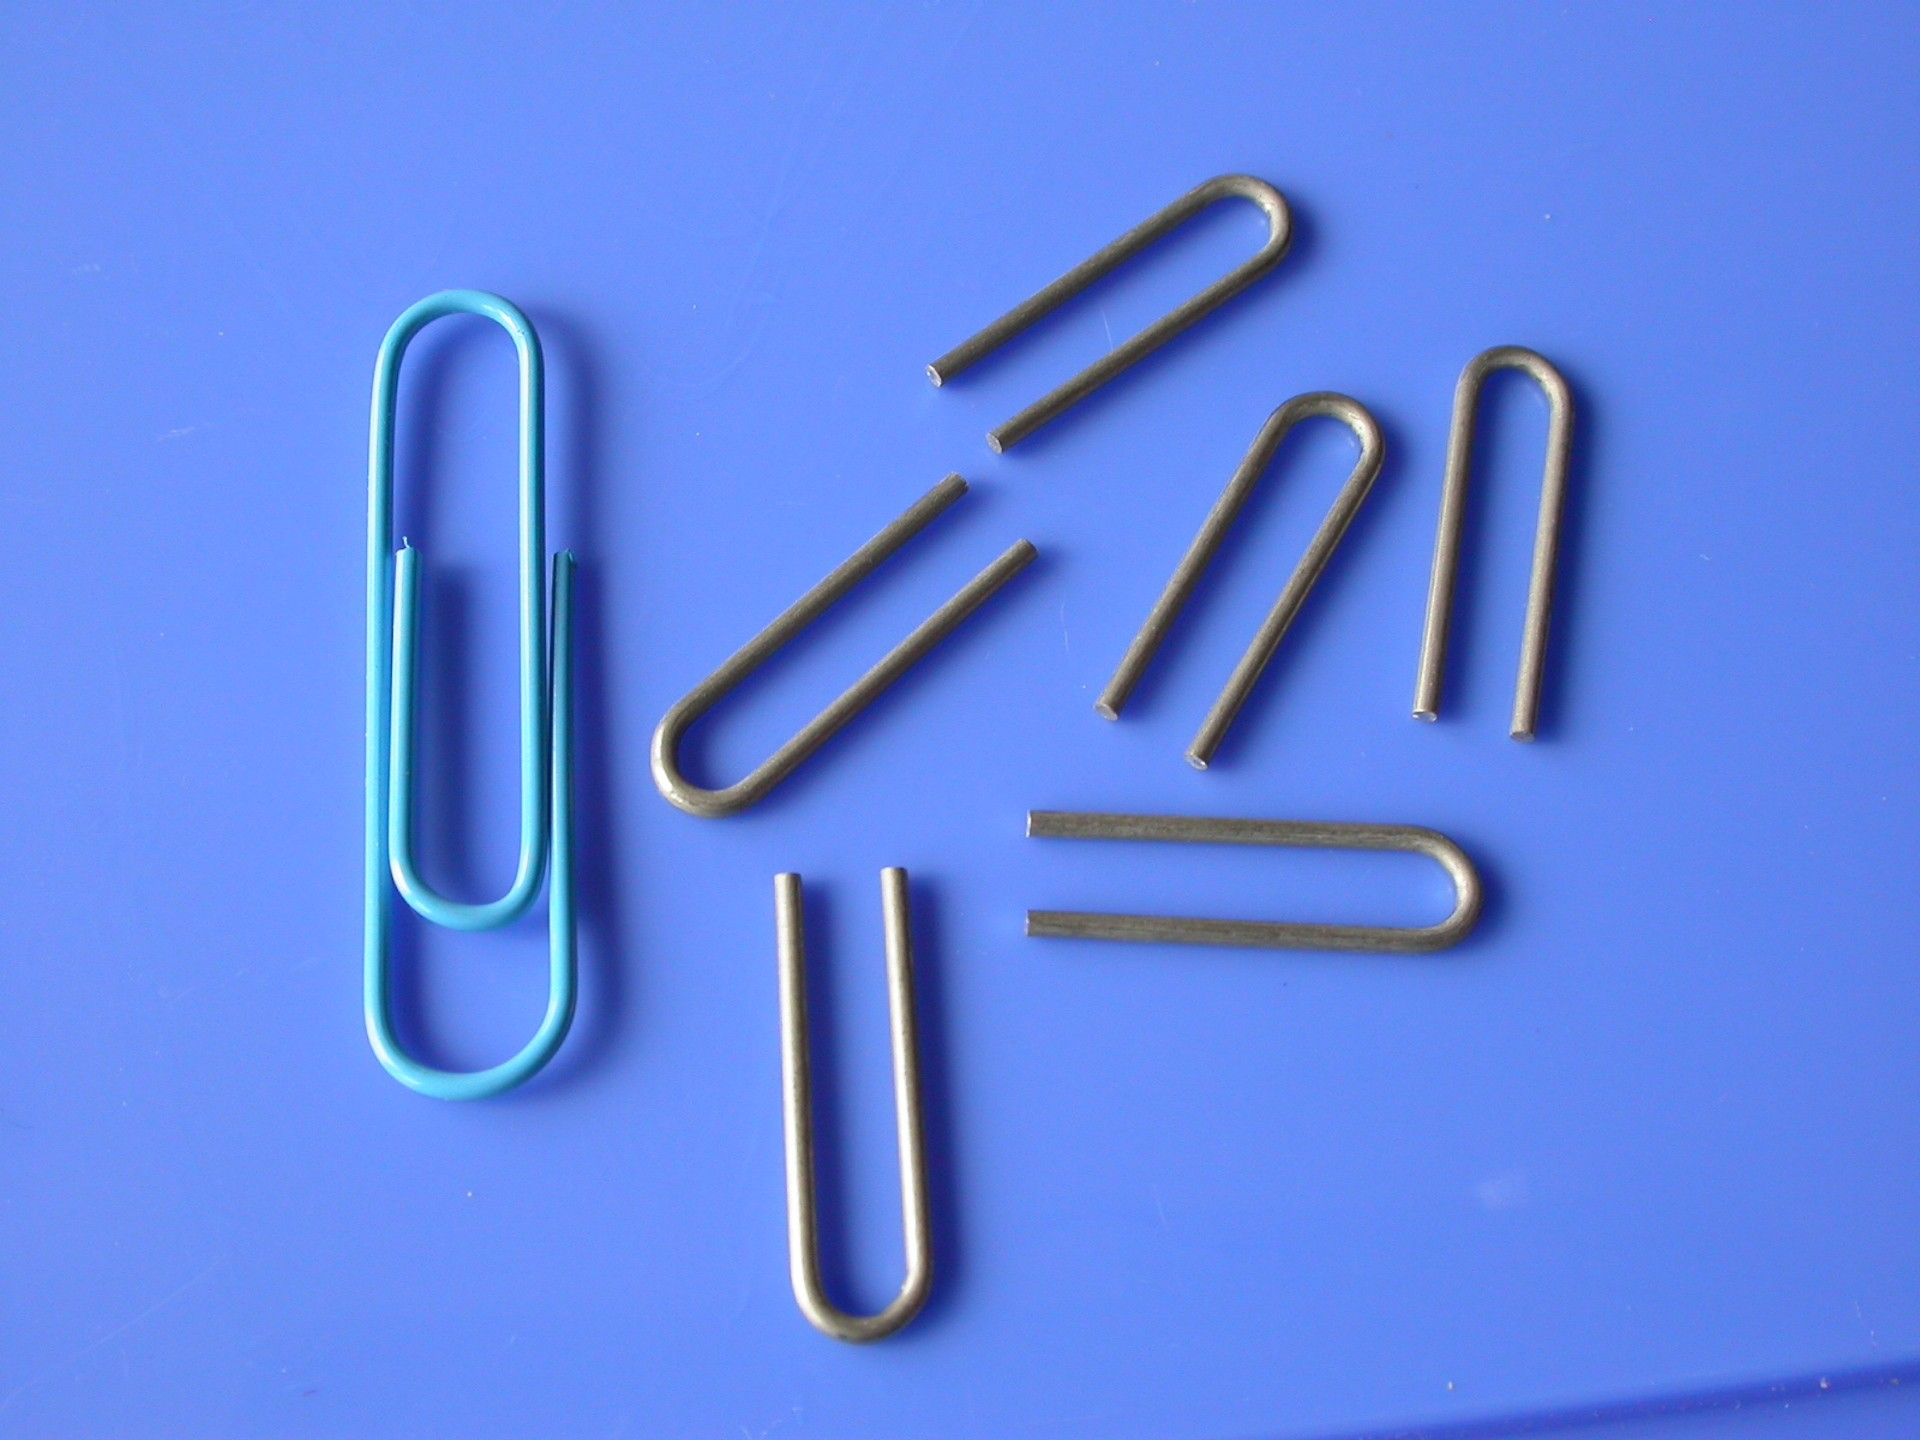 http://www.attica.com/wp-content/uploads/capabilities/tube forming and manipulation/molybdenum-hair-pins.jpg